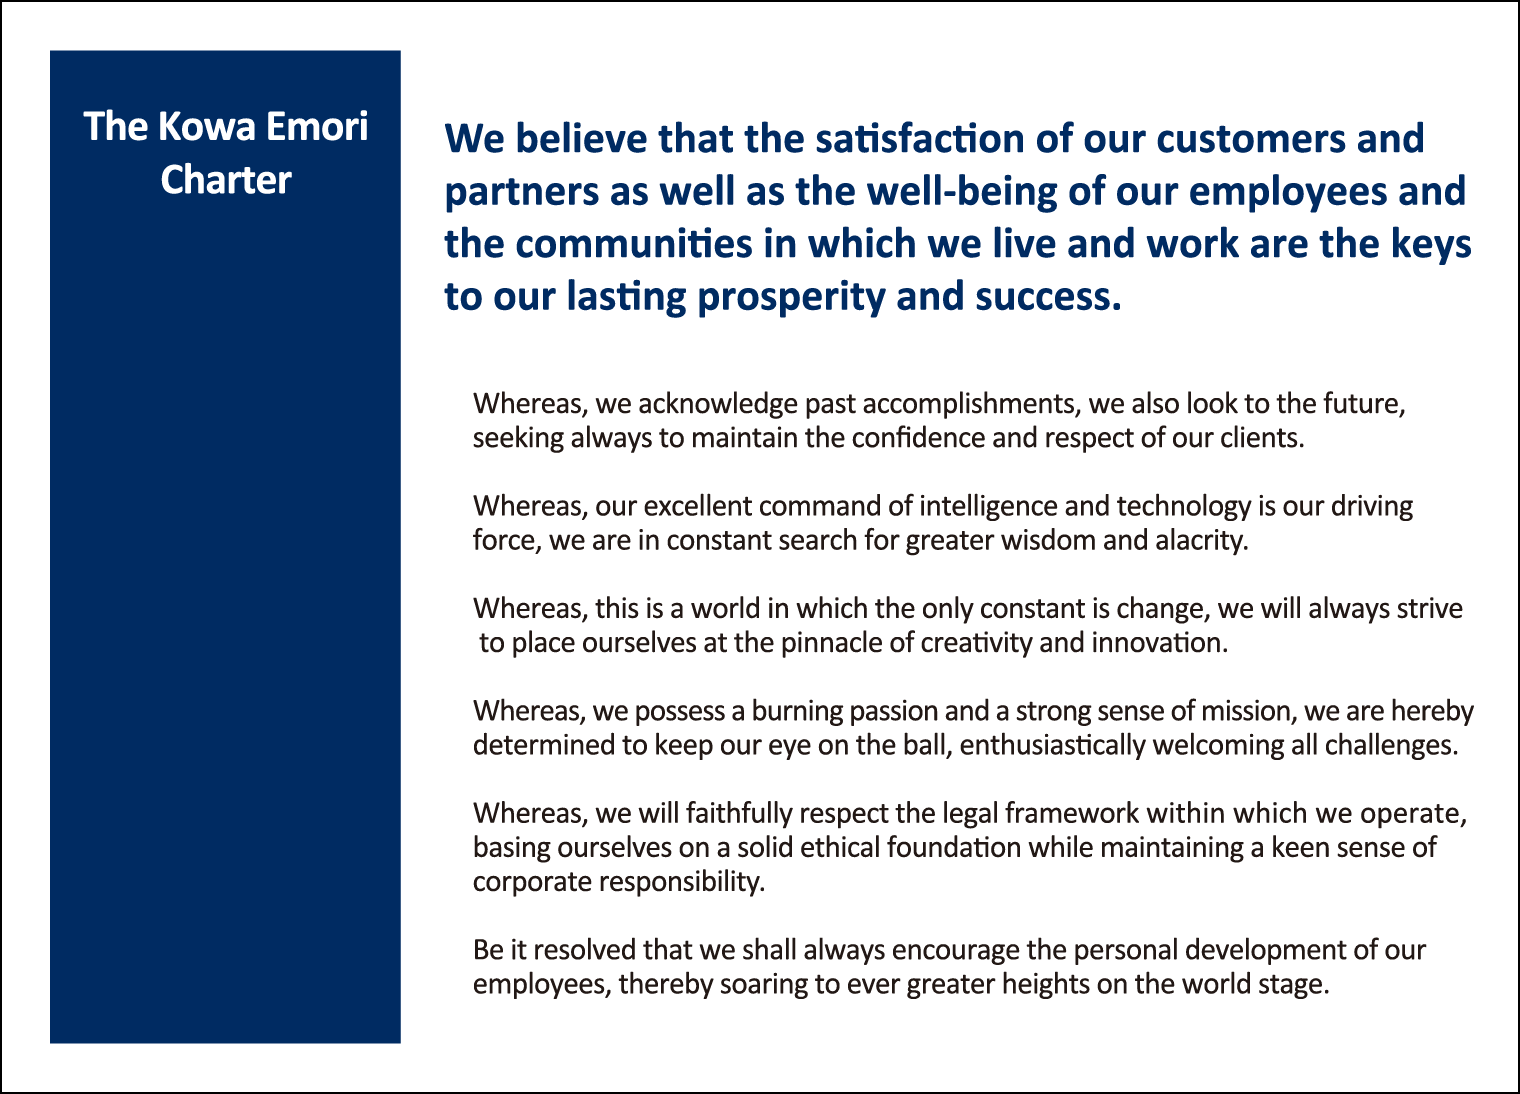 We believe that the satisfaction of our customers and partners as well as the well-being of our employees and the communities in which we live and work are the keys to our lasting prosperity and success.